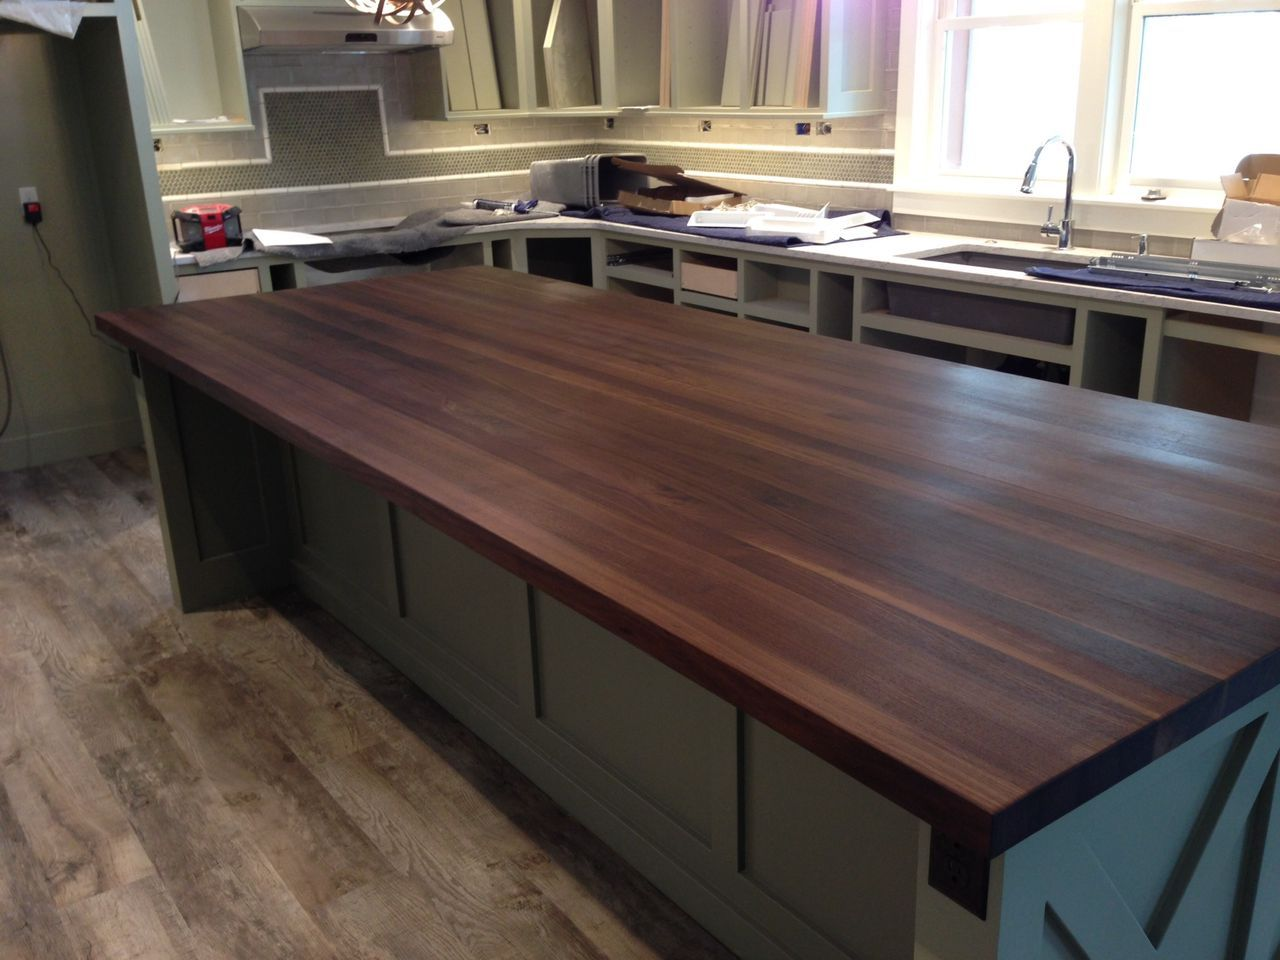 Wood Countertops: Everything you Need to Know - Kitchen Countertops